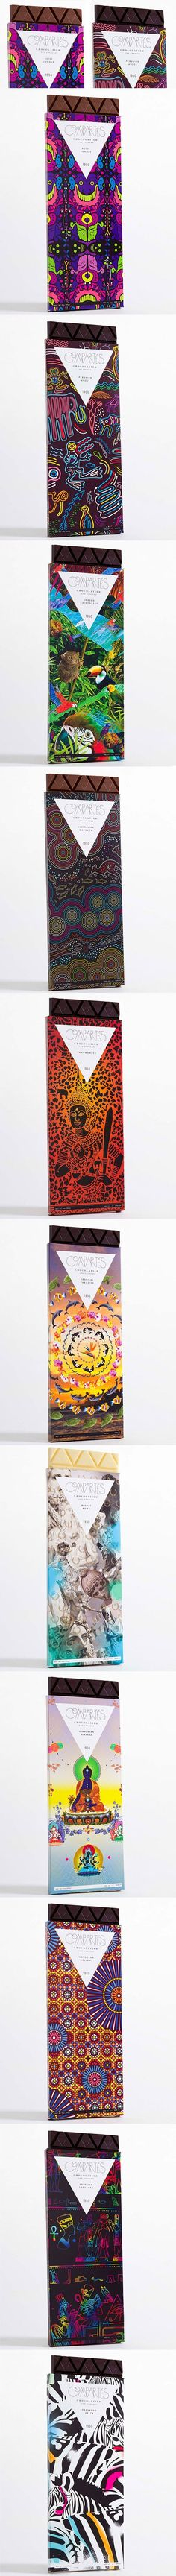 This is a special chocolate packaging design, use strong bright contrast color and illustration, for me, the pack is like to tell a story of fantasy.